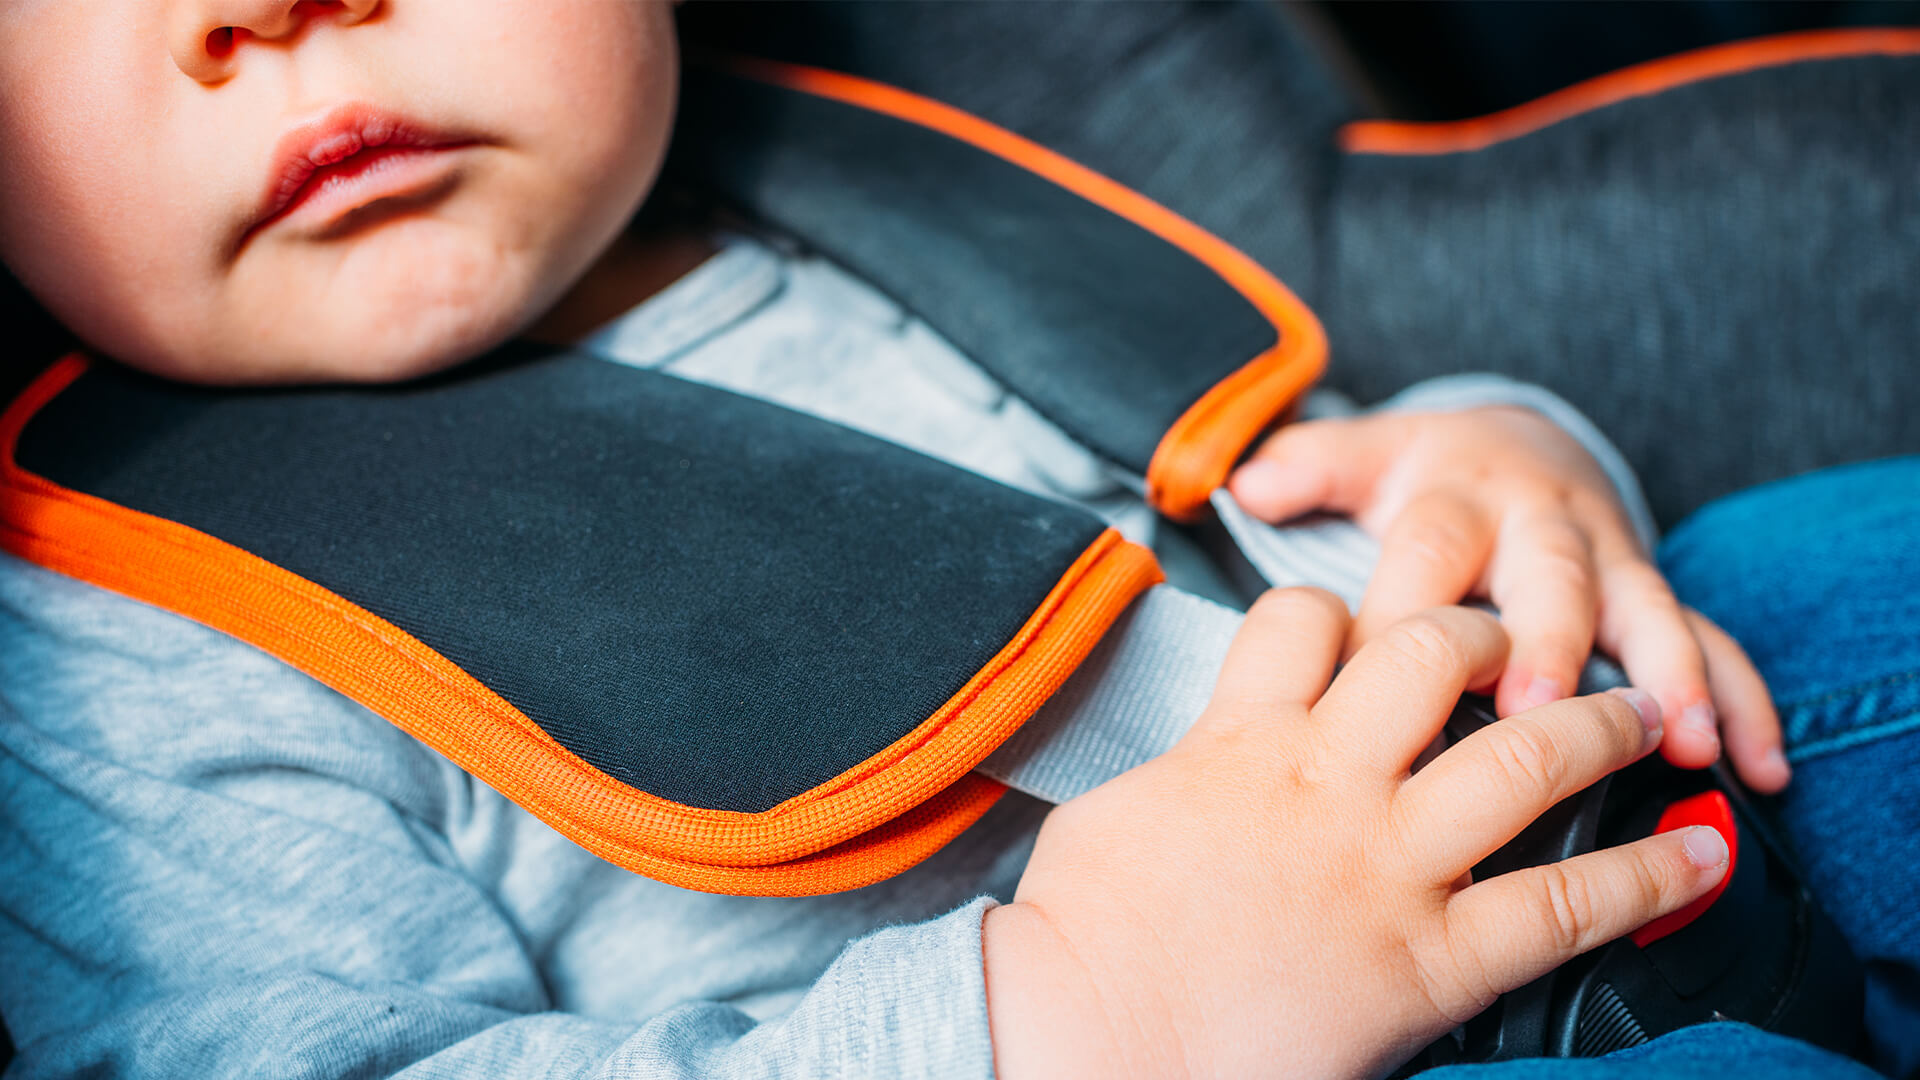 A Guide on Safely and Legally travelling with Children in a Car with Child Restraints